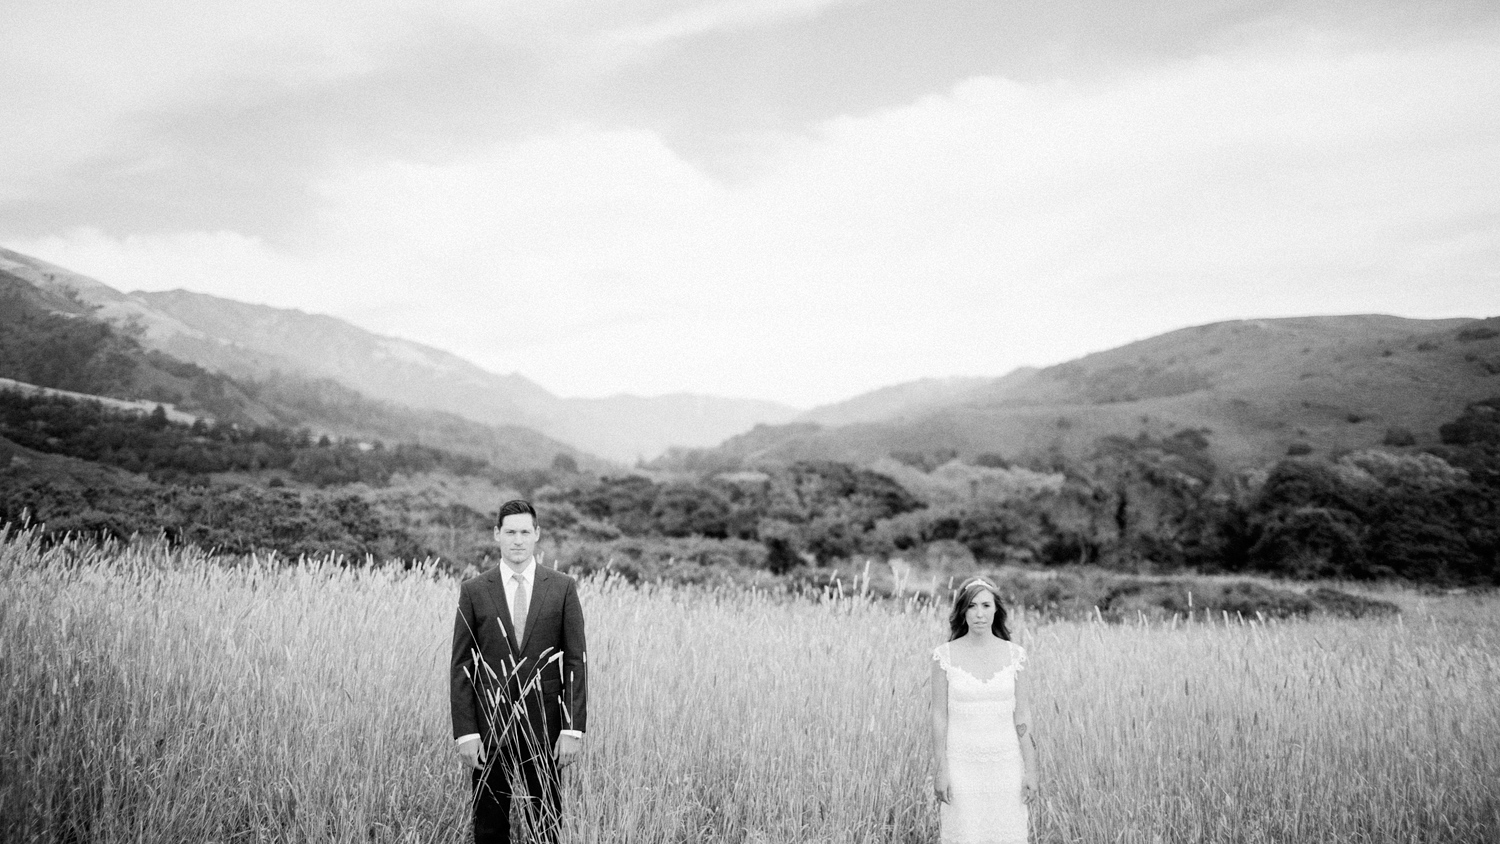 keblog-big-sur-wedding-ryan-flynn-photography-0040.JPG